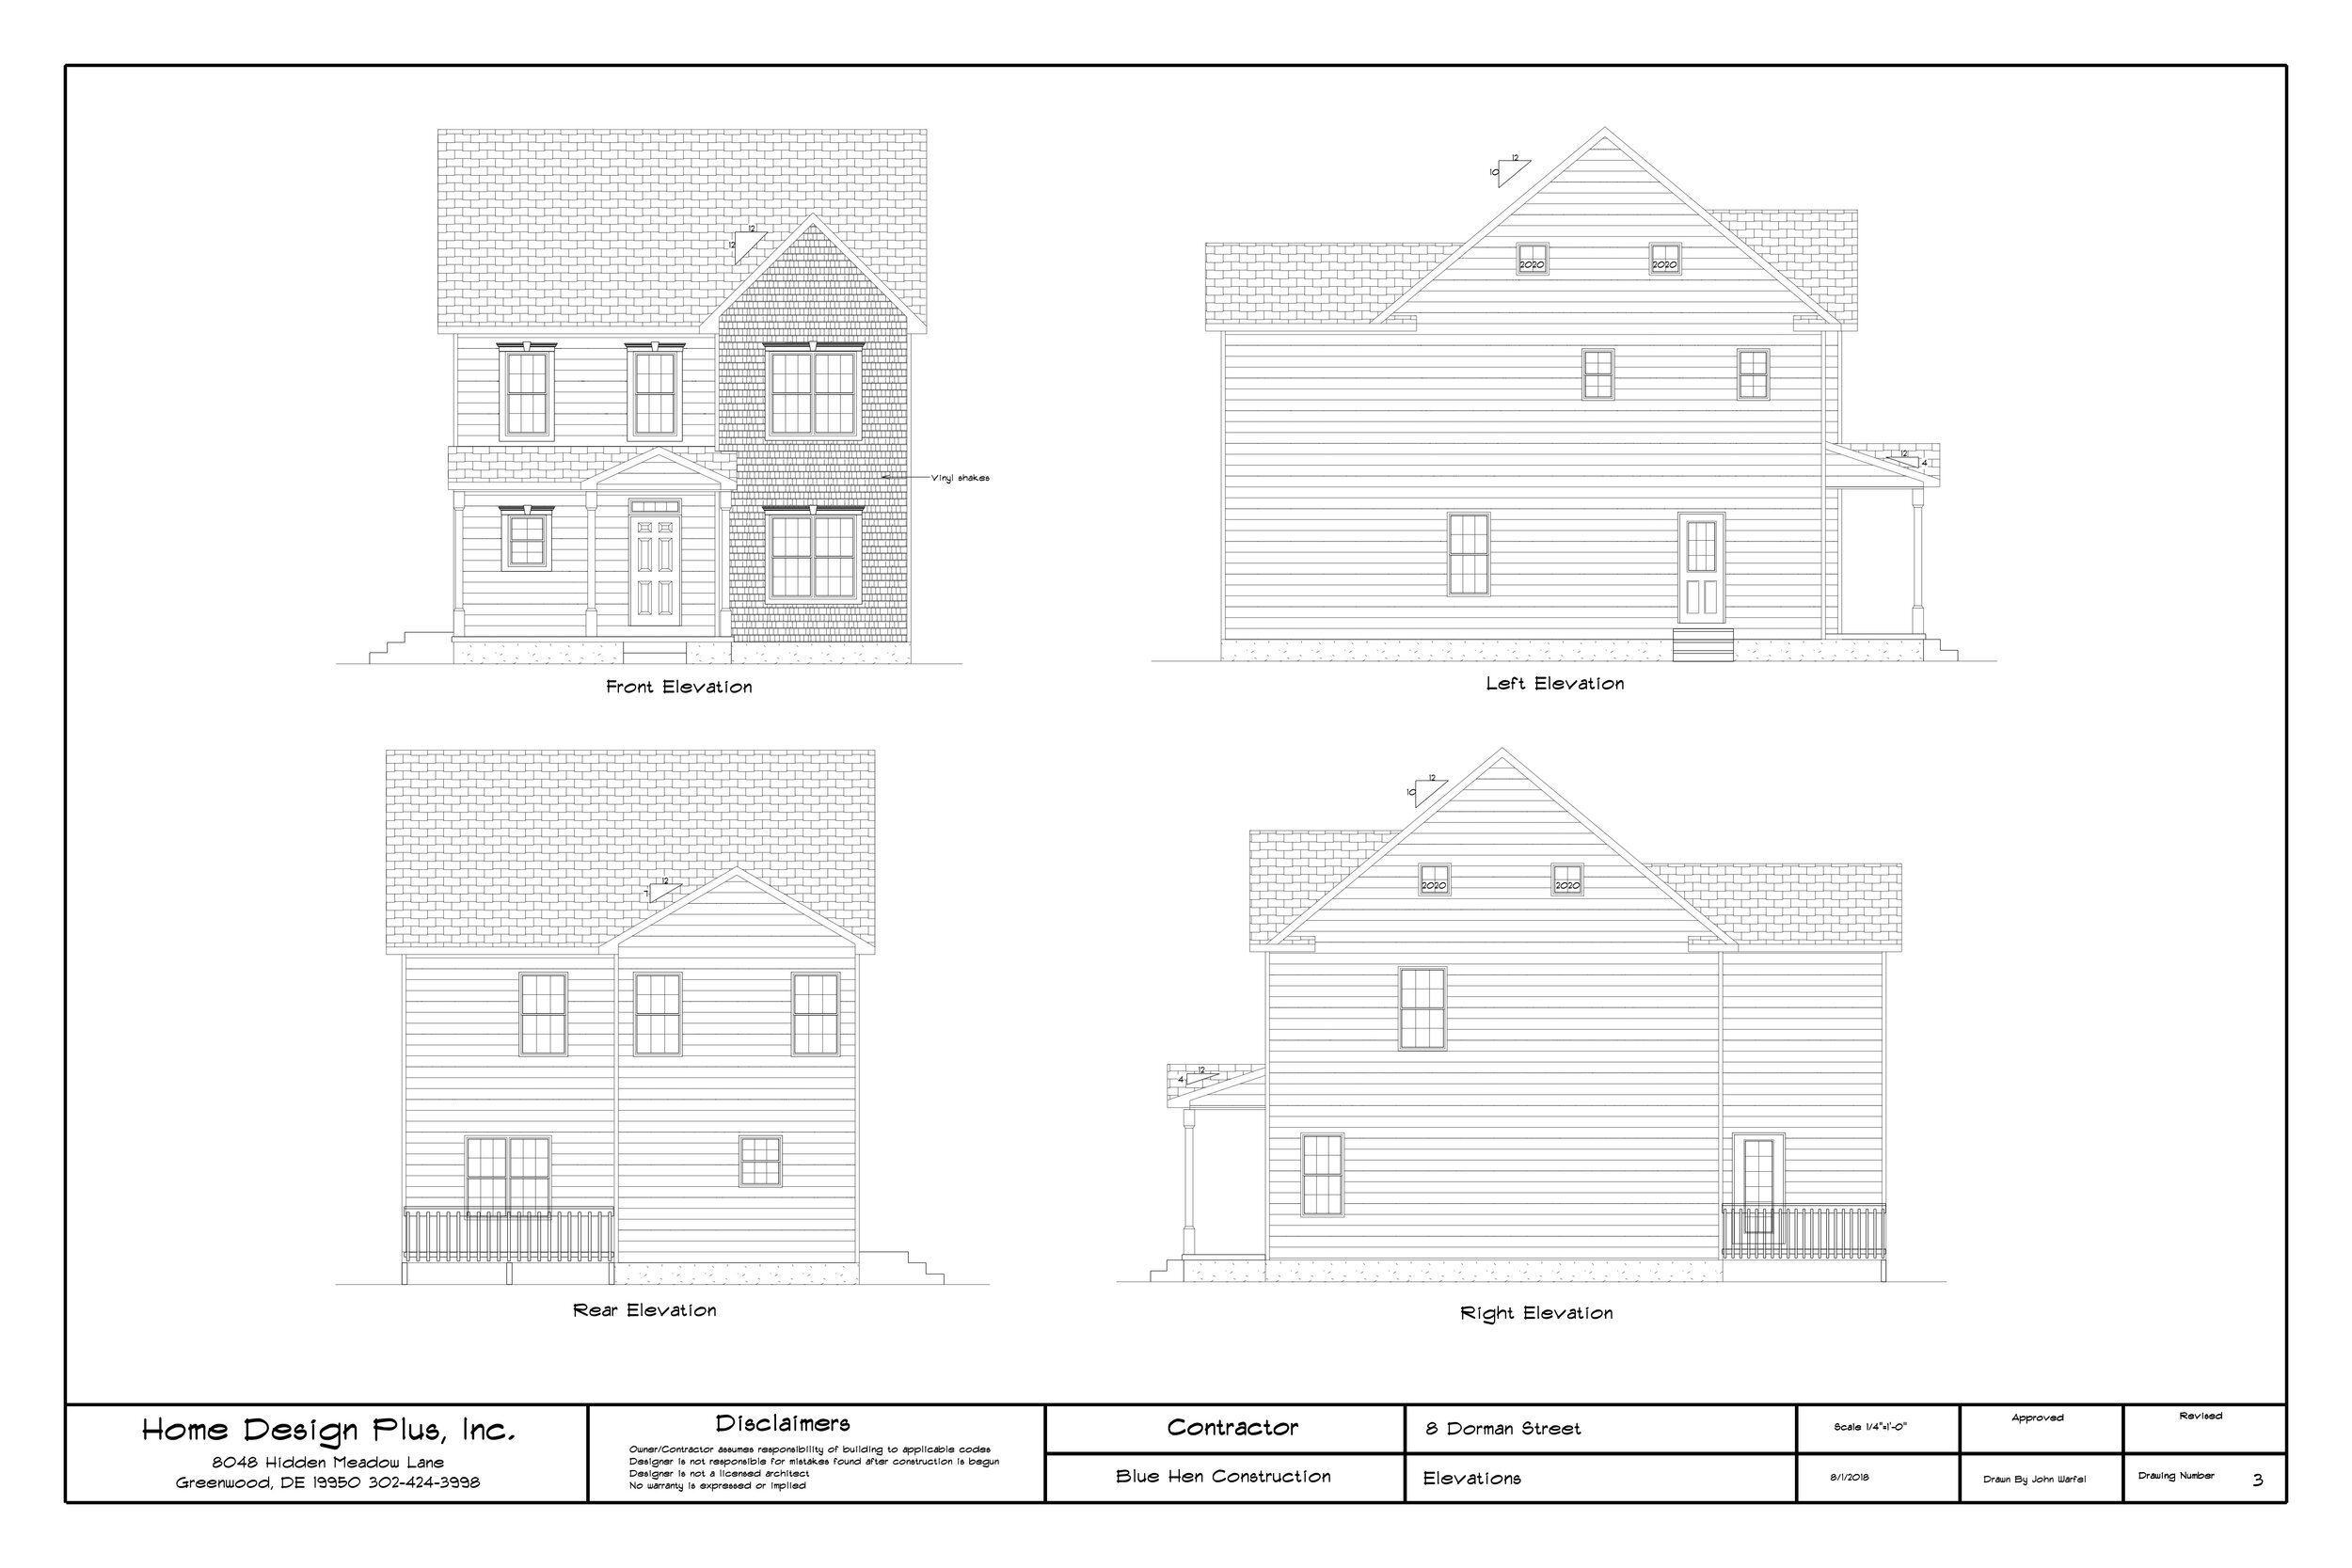 8_Dorman_Street_Elevations.jpg